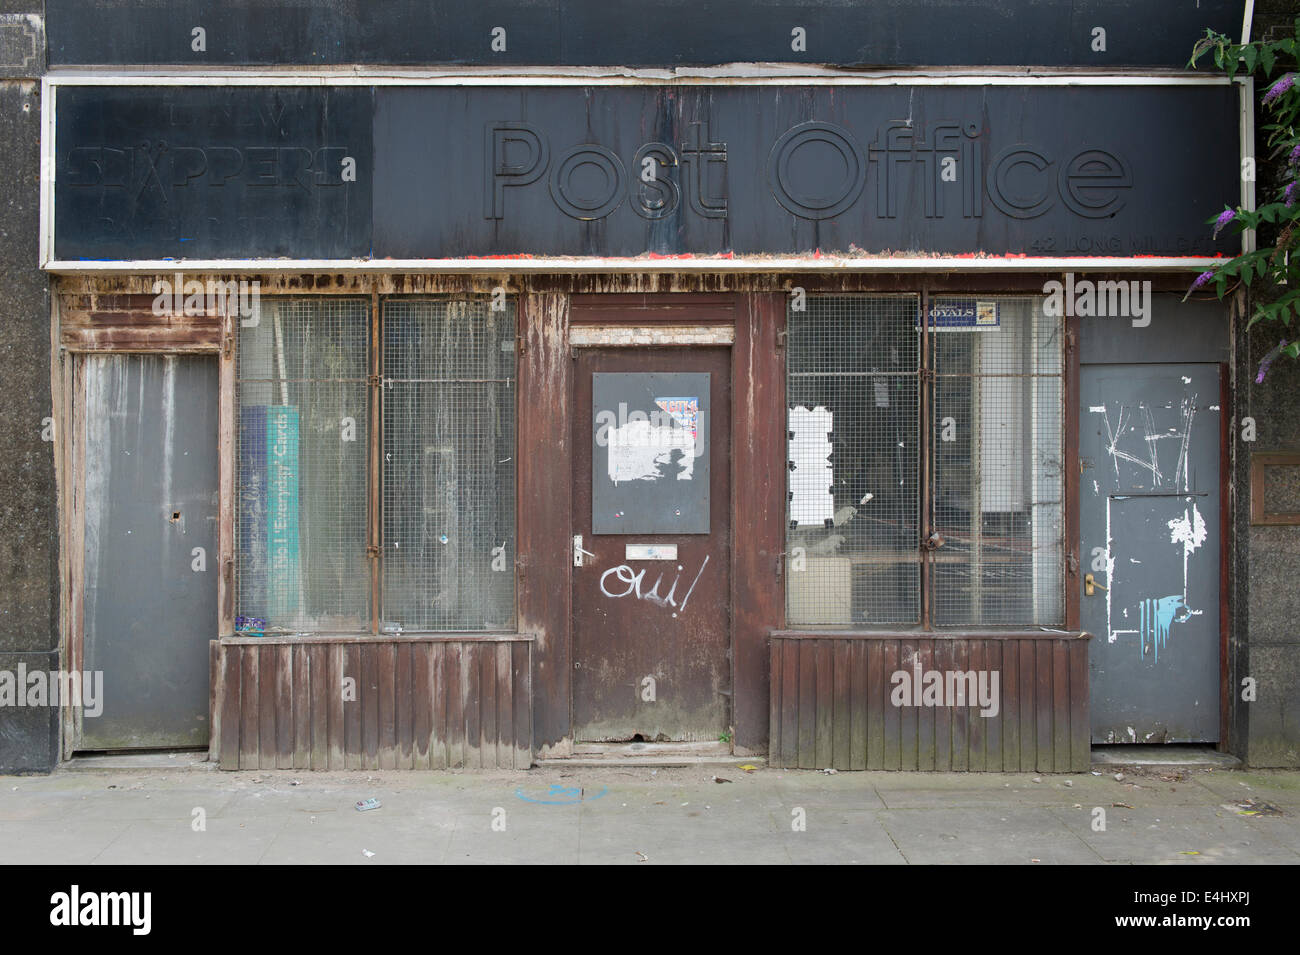 The dilapidated property of a closed down Post Office near Victoria railway station in Manchester - Stock Image